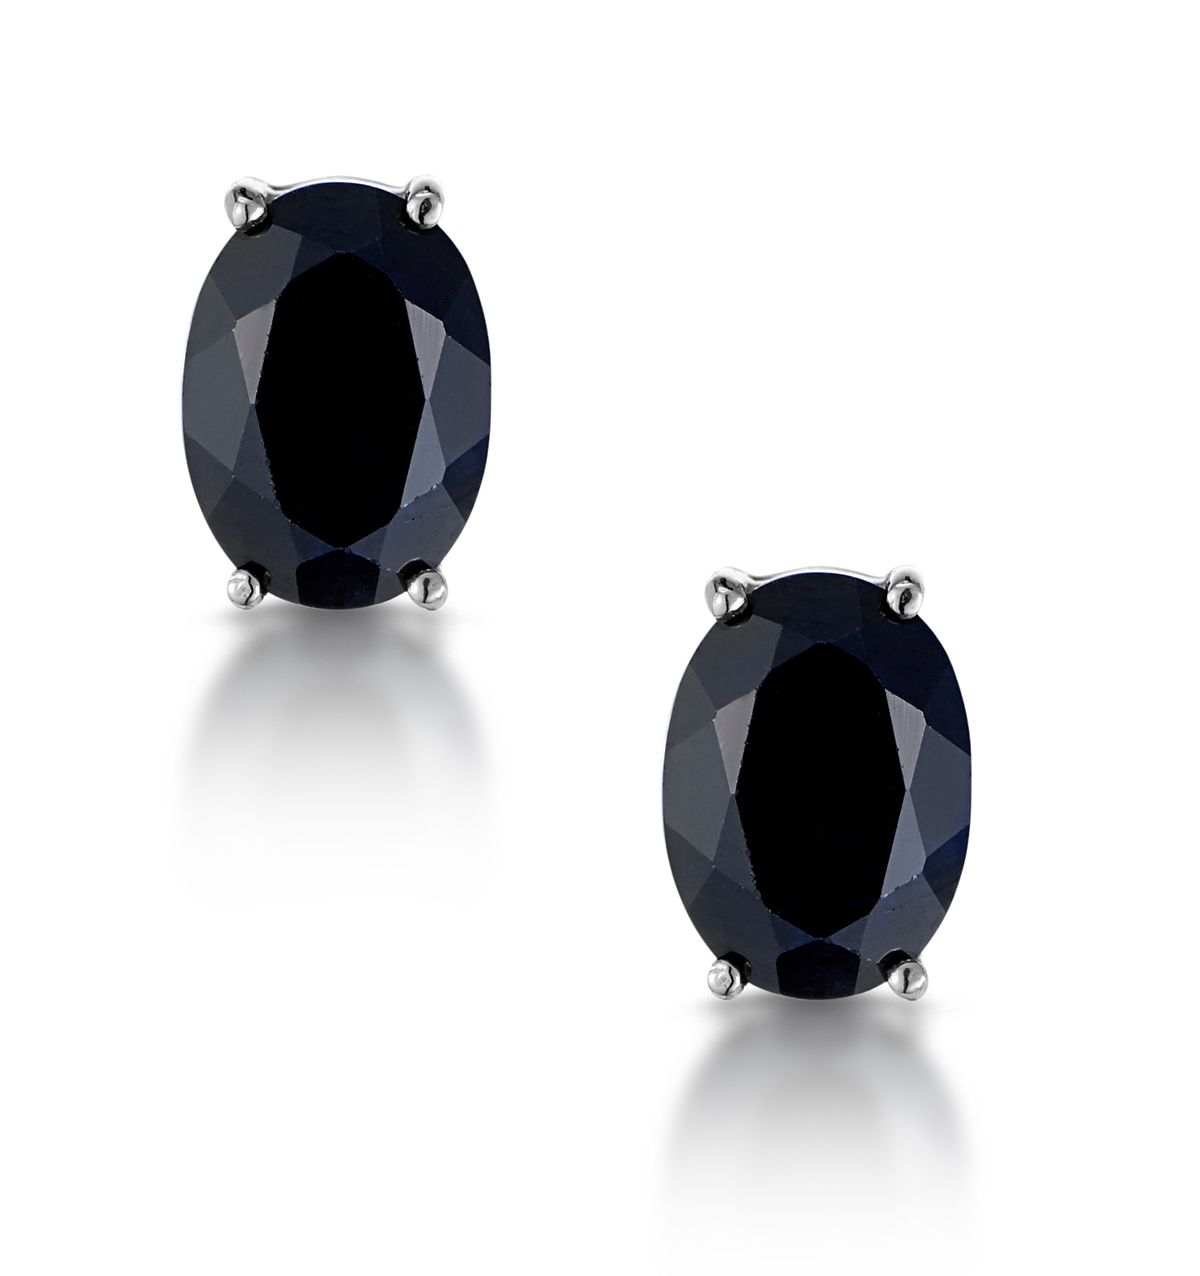 Sapphire 7mm x 5mm and 9K White Gold Earrings